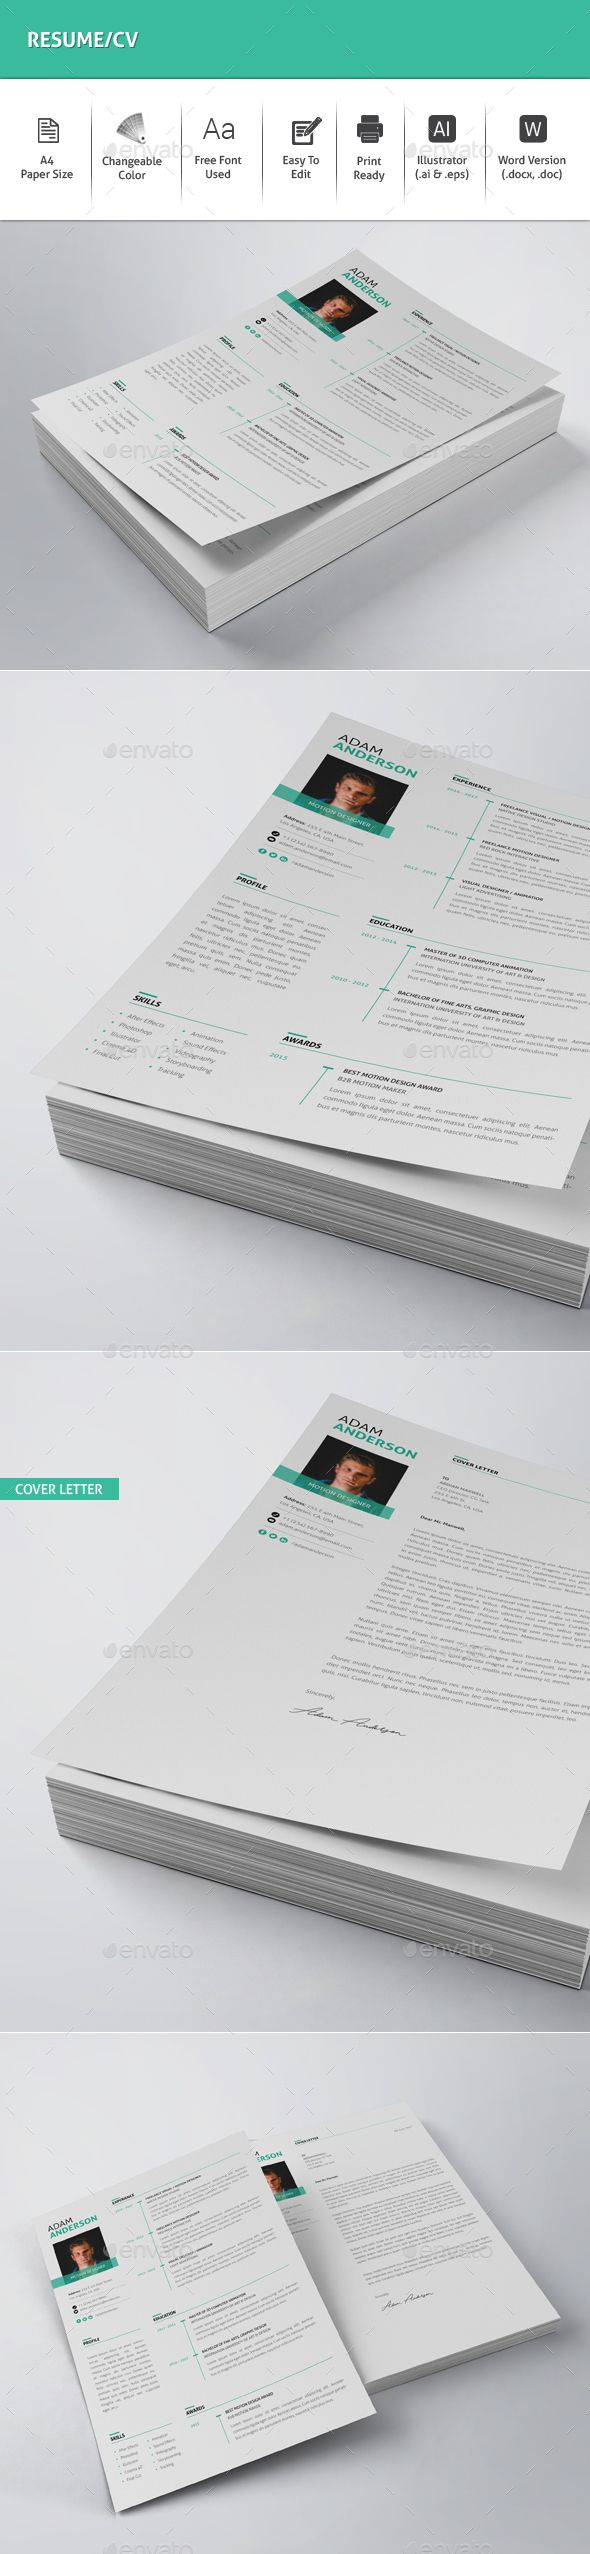 ... Sample Picture Ideas References D9b67670ad676a48c67a3168b2715e60 Cover  Letter Introduction Samplehtml Resignation Letter Medical Cognos Controller